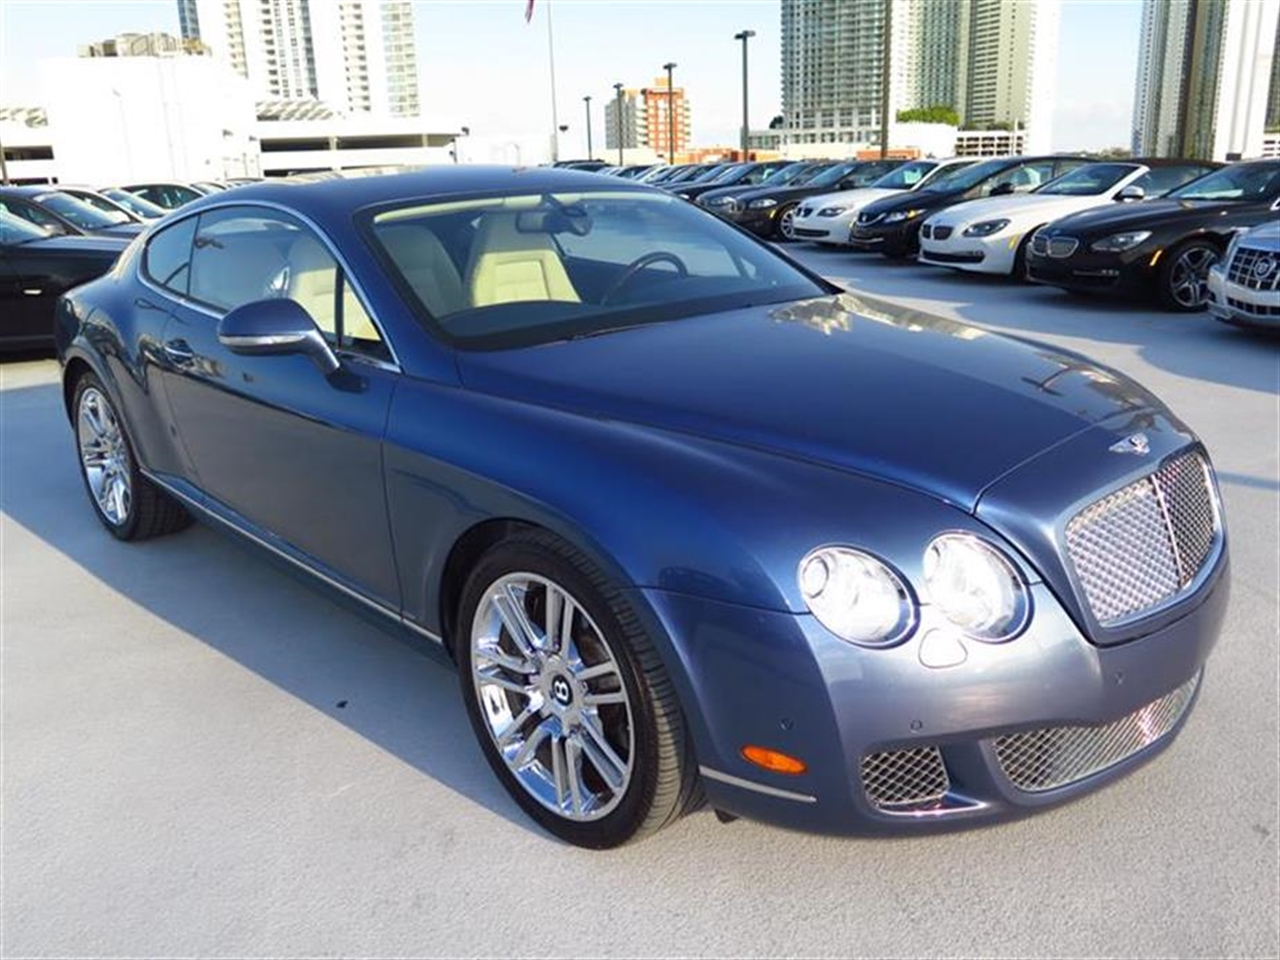 2010 BENTLEY CONTINENTAL GT 2dr Cpe 6915 miles 4-spoke monotone leather trimmed steering wheel Cr